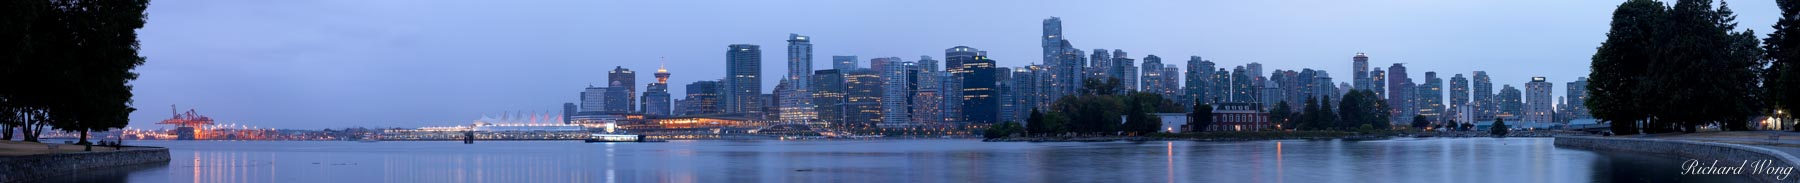 Vancouver Skyline from Stanley Park, British Columbia, Canada, photo, photo